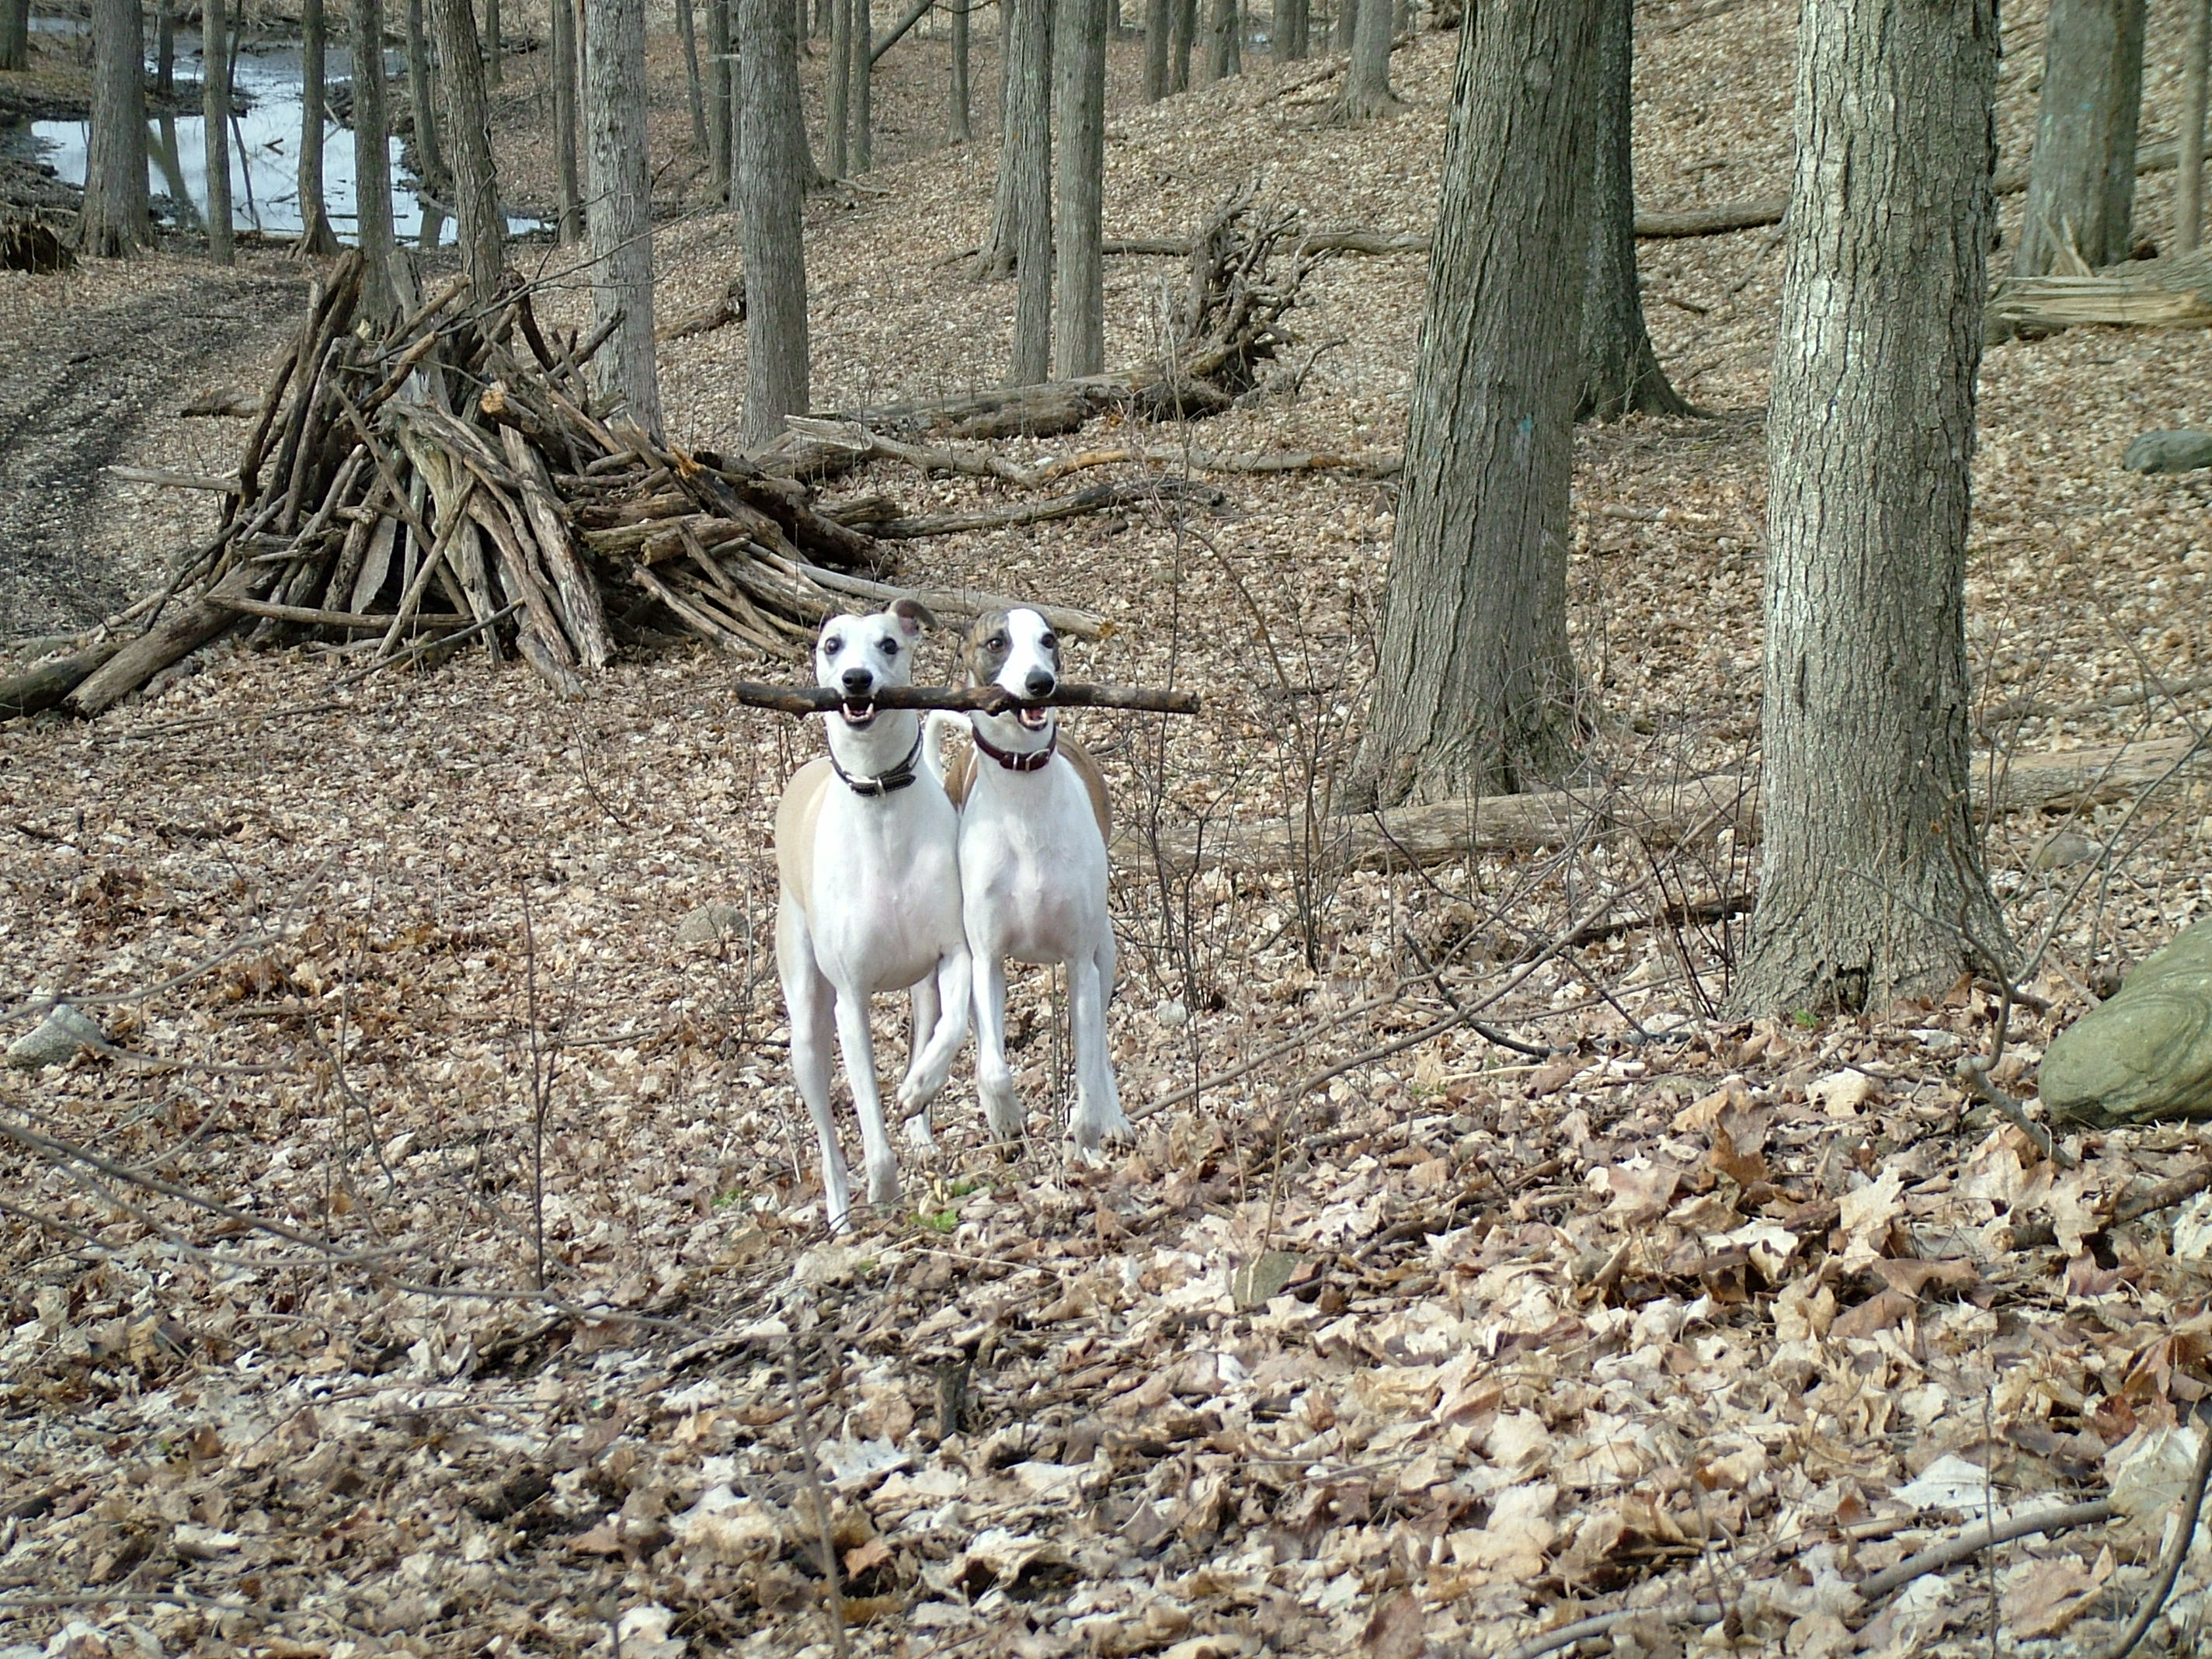 Enjoying a hike with his buddy Zeke